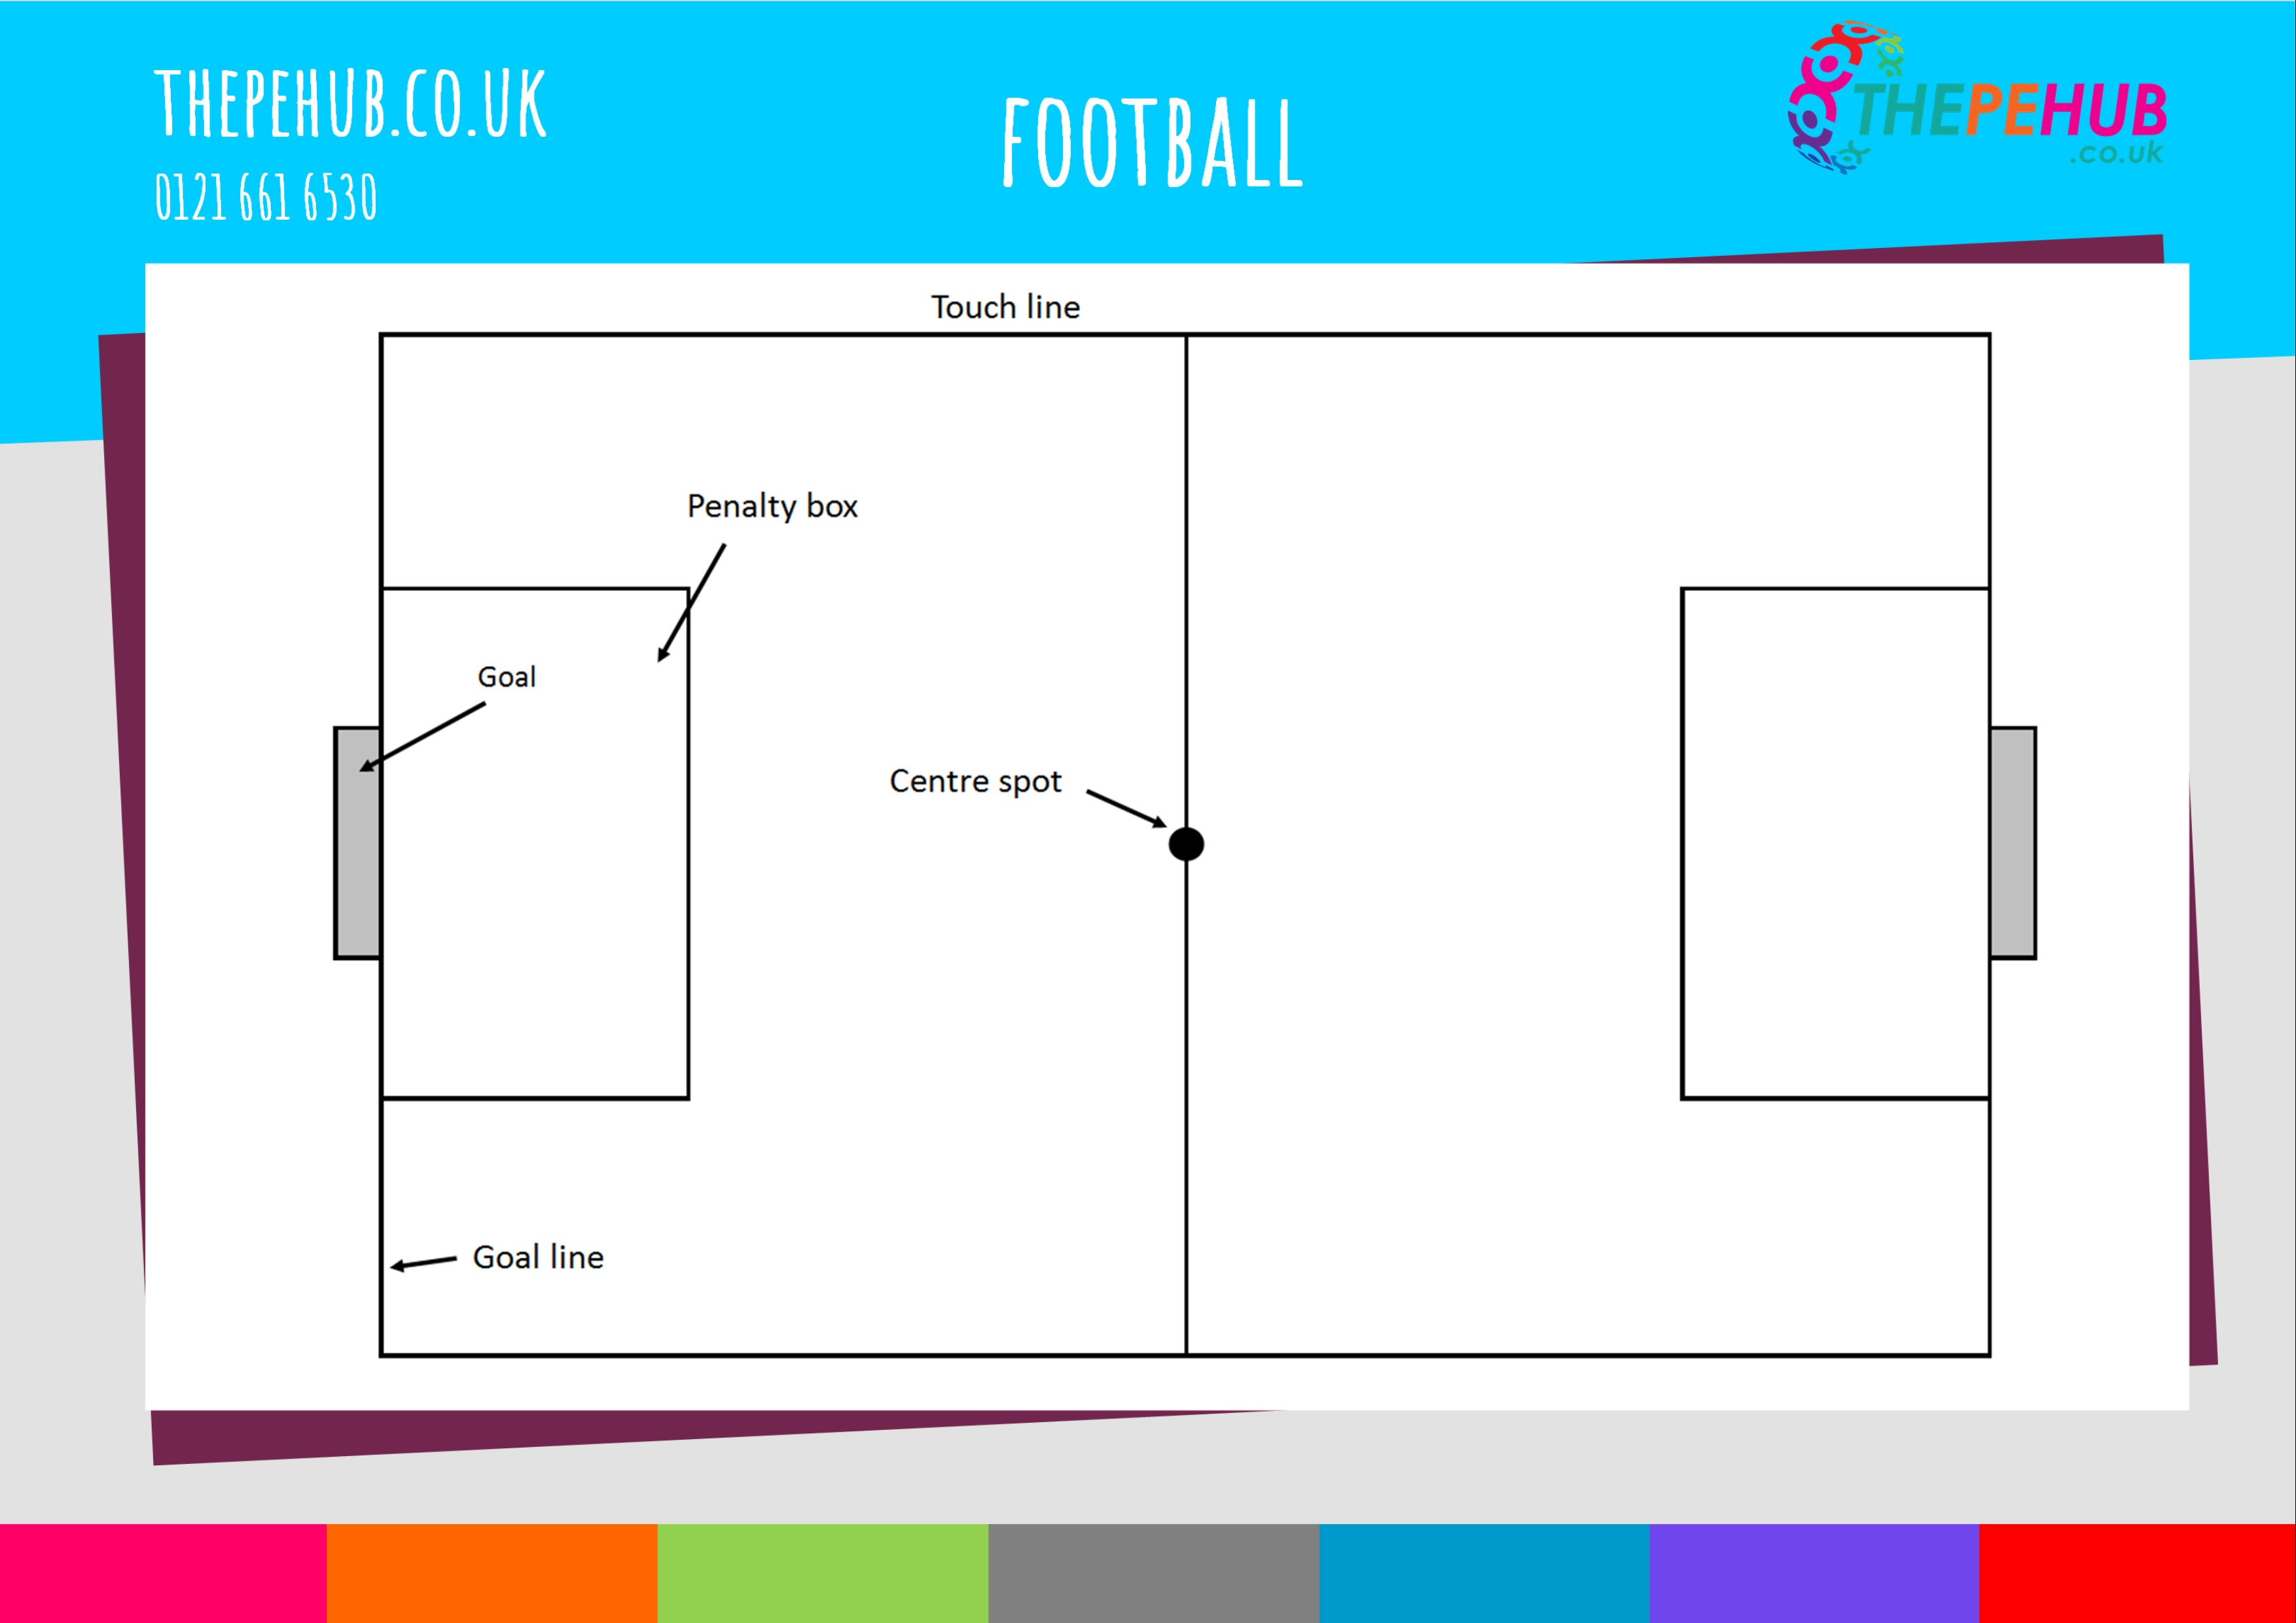 School games football pitch layout